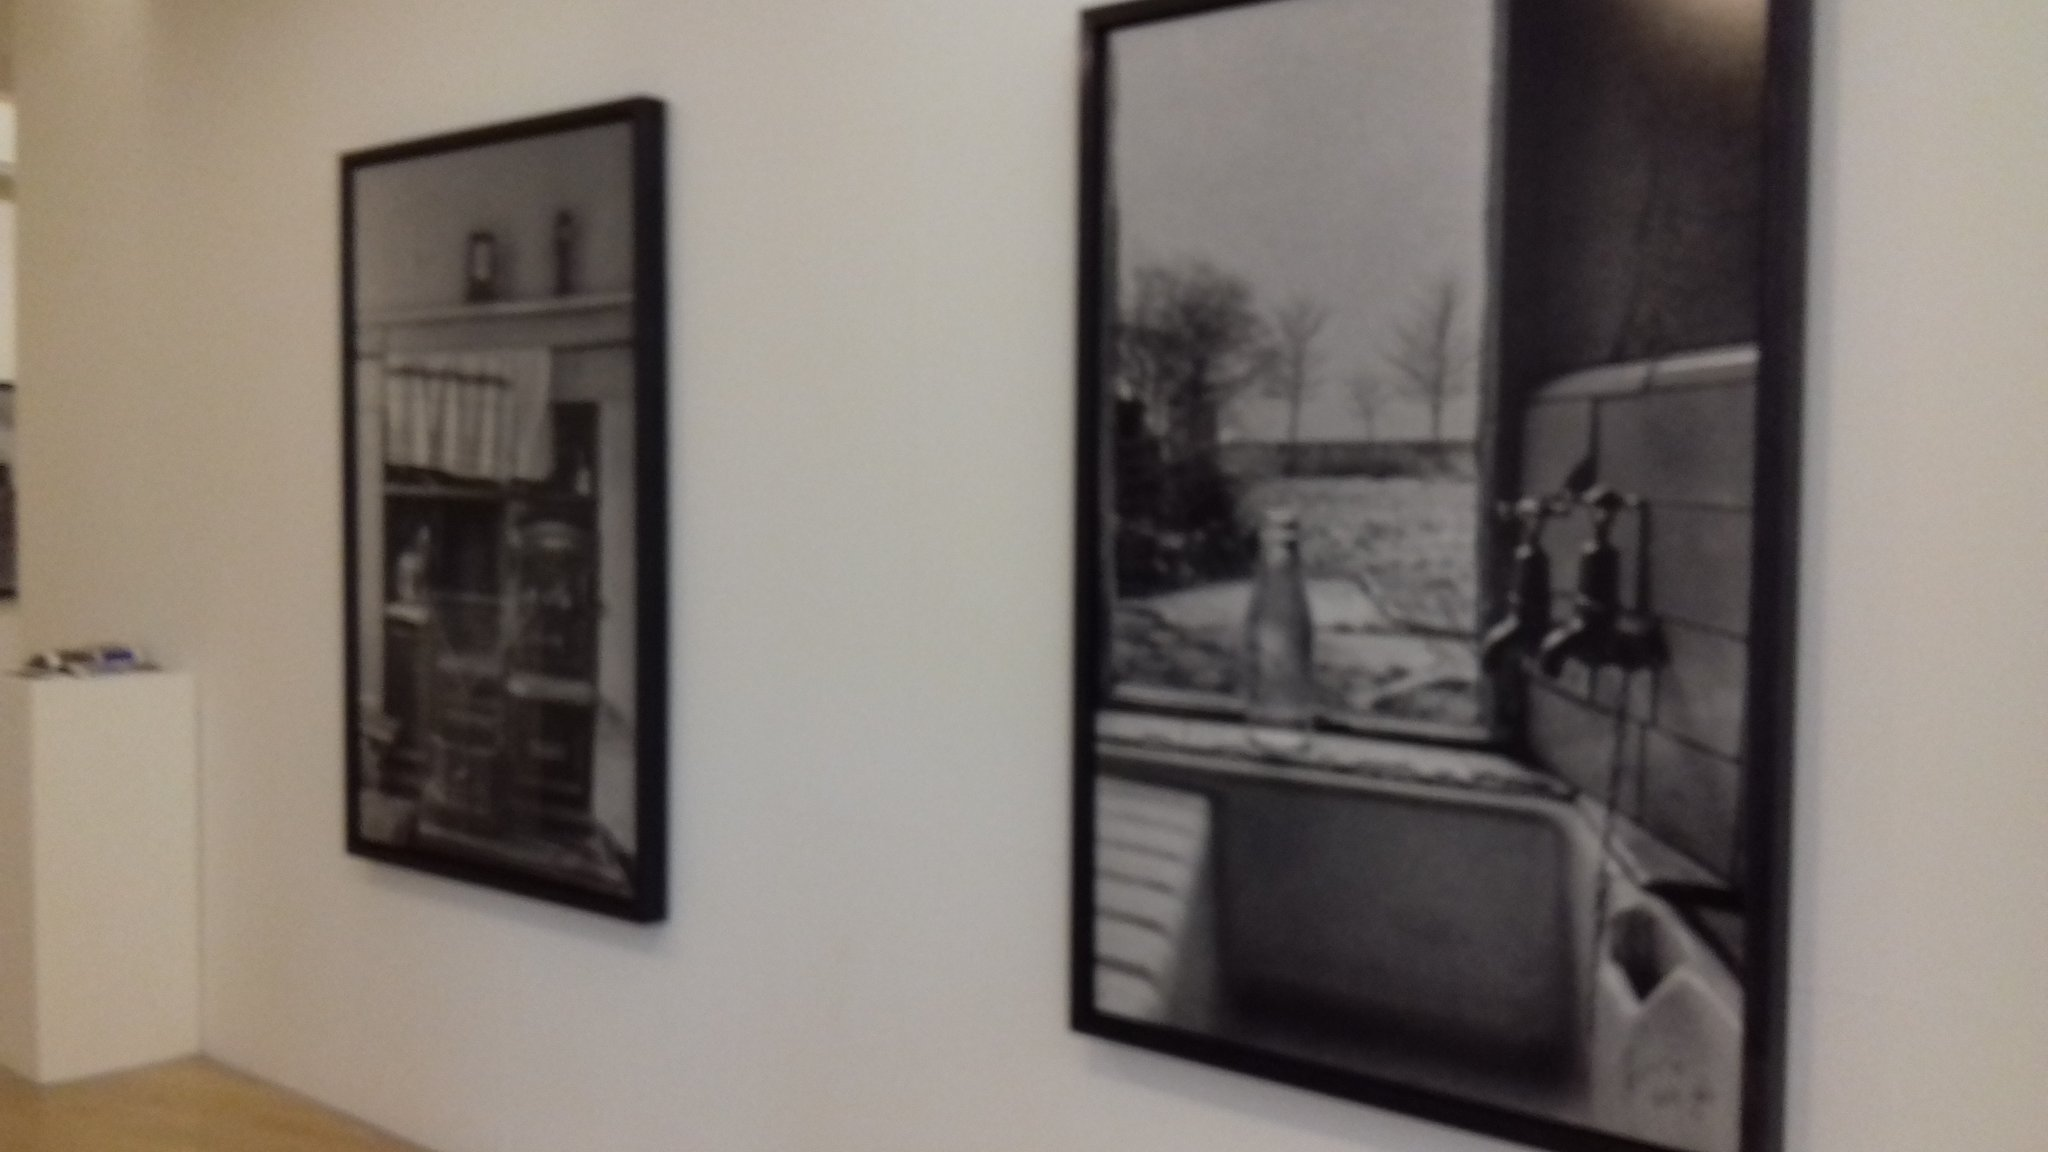 Amazing. Pictures of another era... but in my lifetime. Lowry Museum Salford #CliveArrowsmith photos. https://t.co/KU5iEf6Wf1